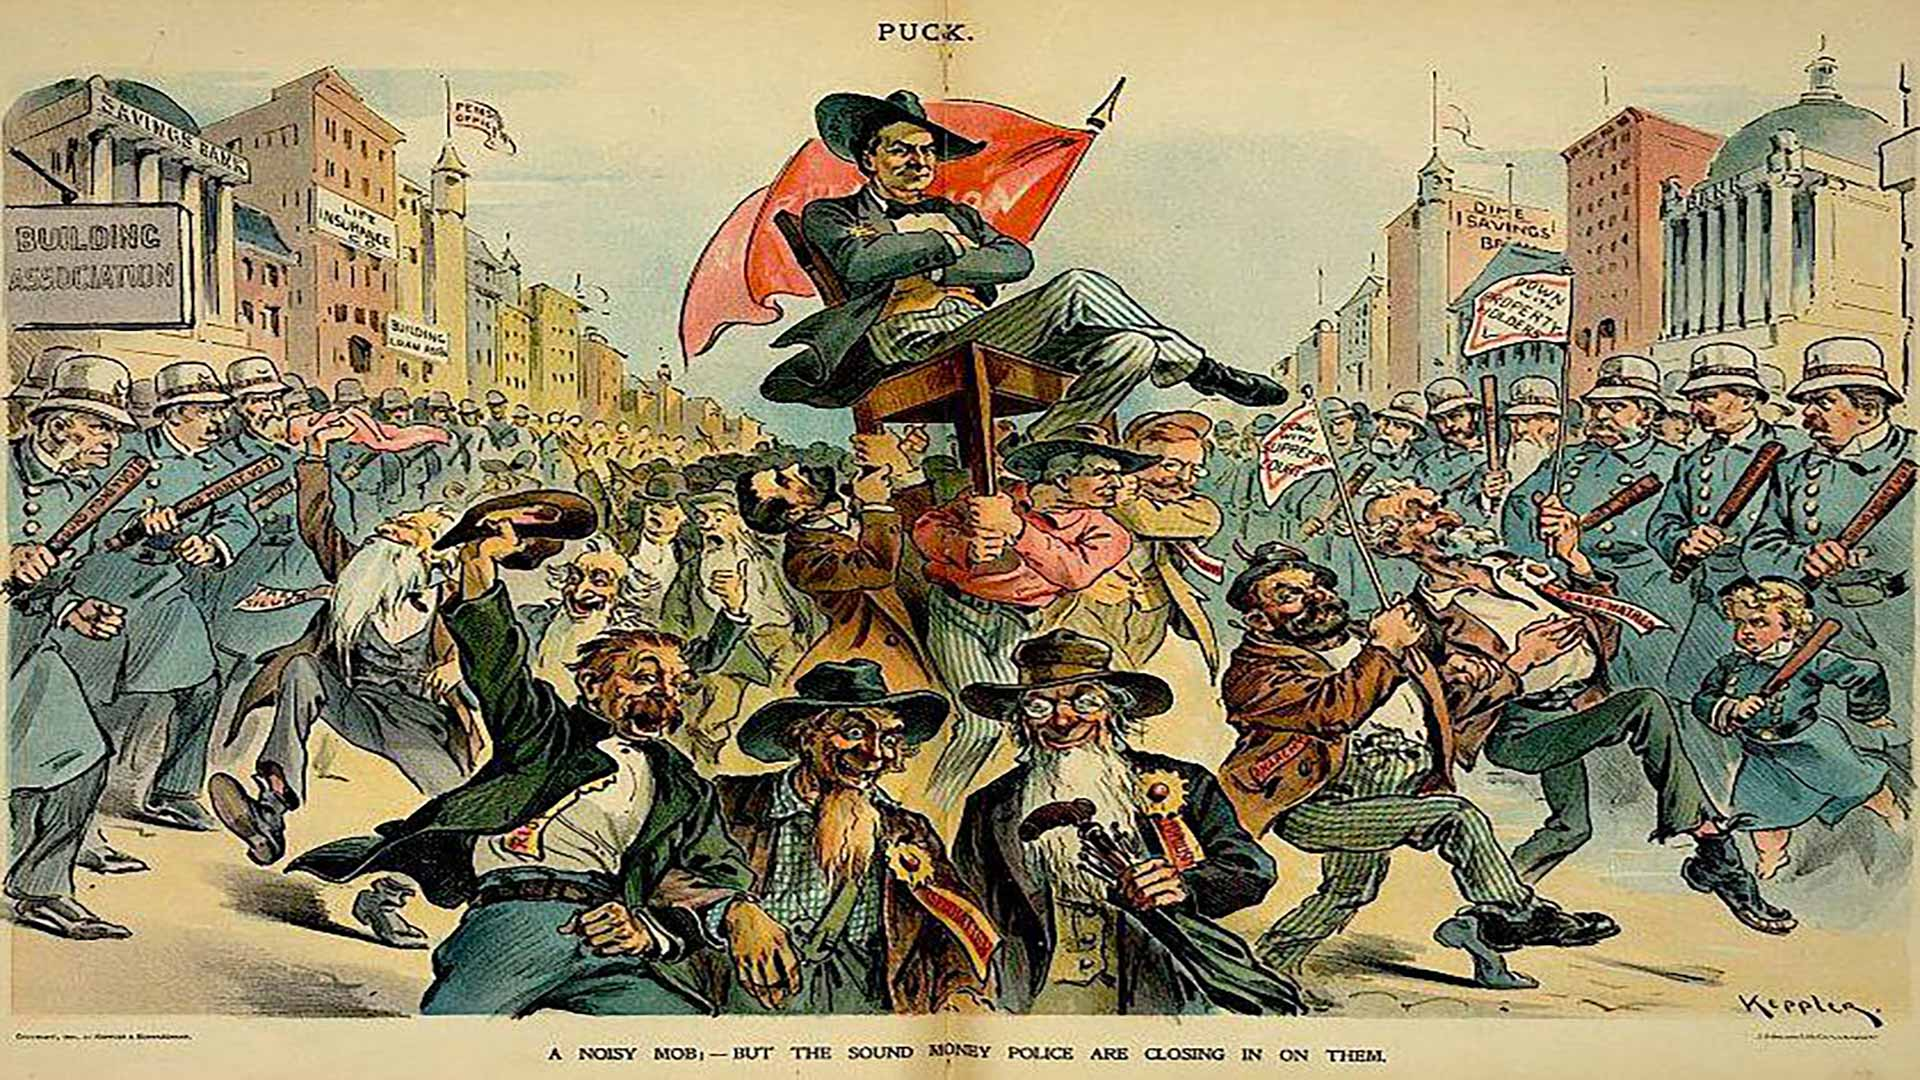 archival political cartoon depicting a crowded street with a man being carried on a chair as police look on menacingly